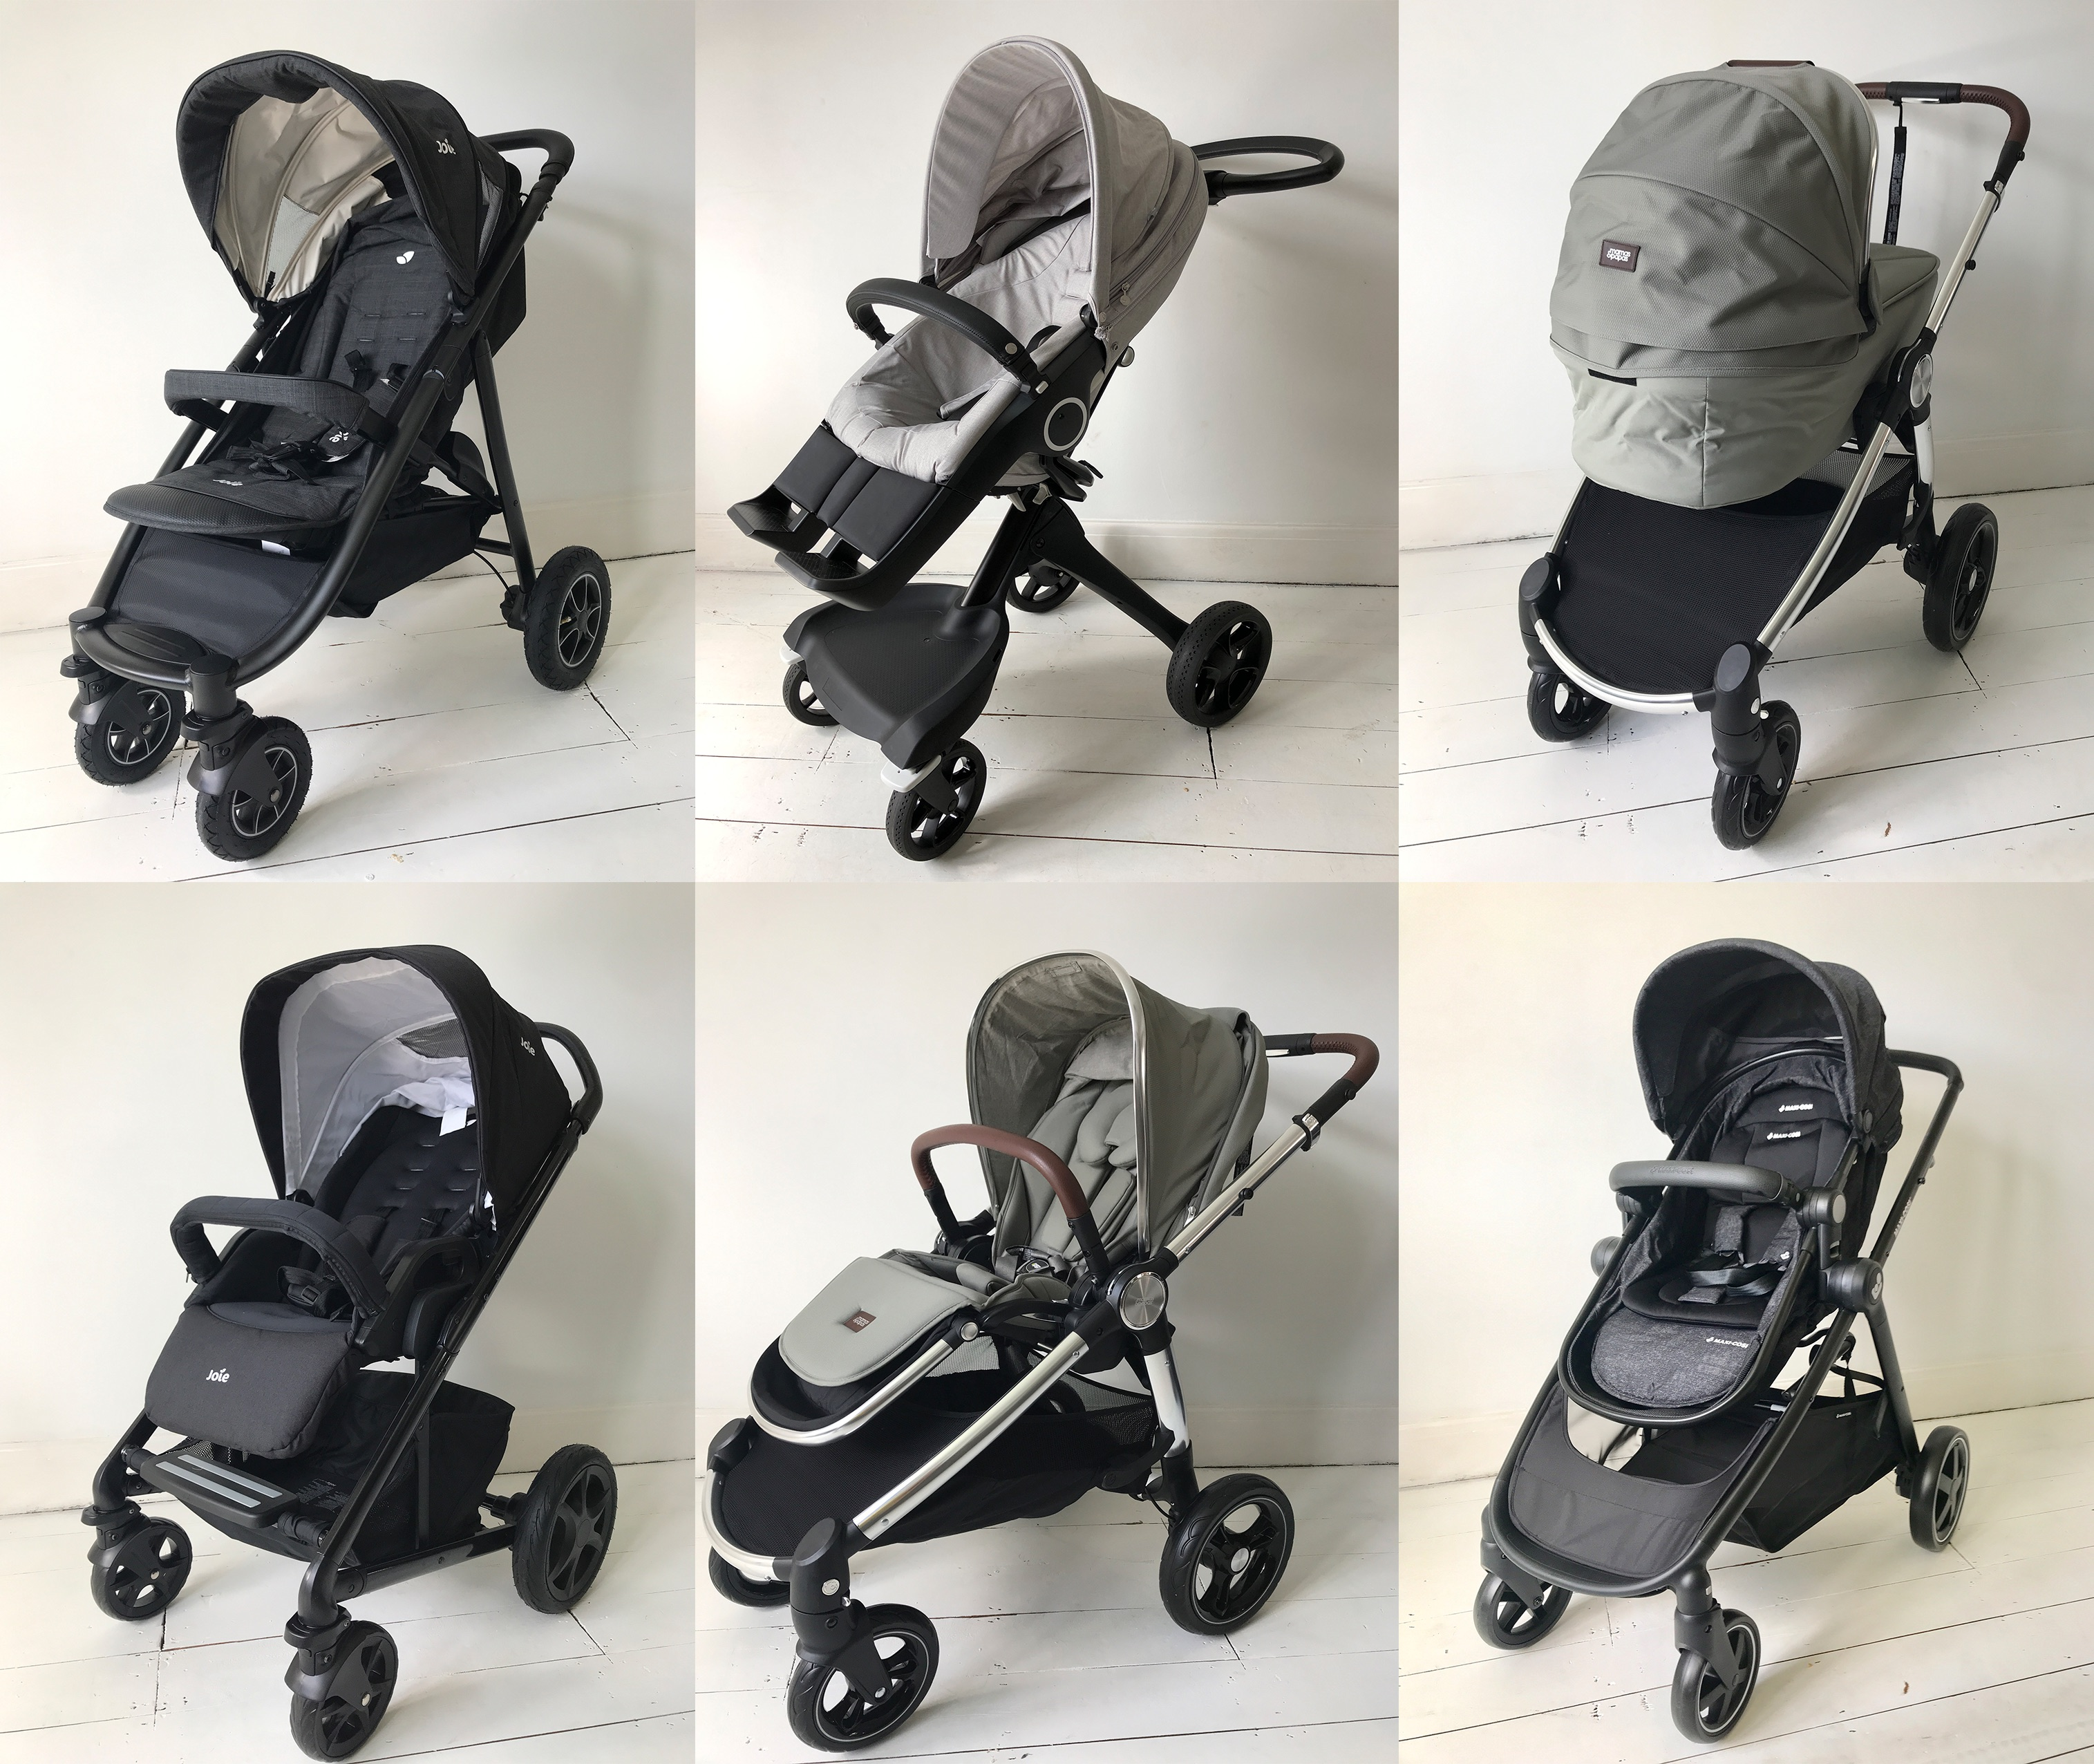 Dadsnet reviews 6 of the UK's best pushchairs in 2018, Pushchairs 2%, product-review%